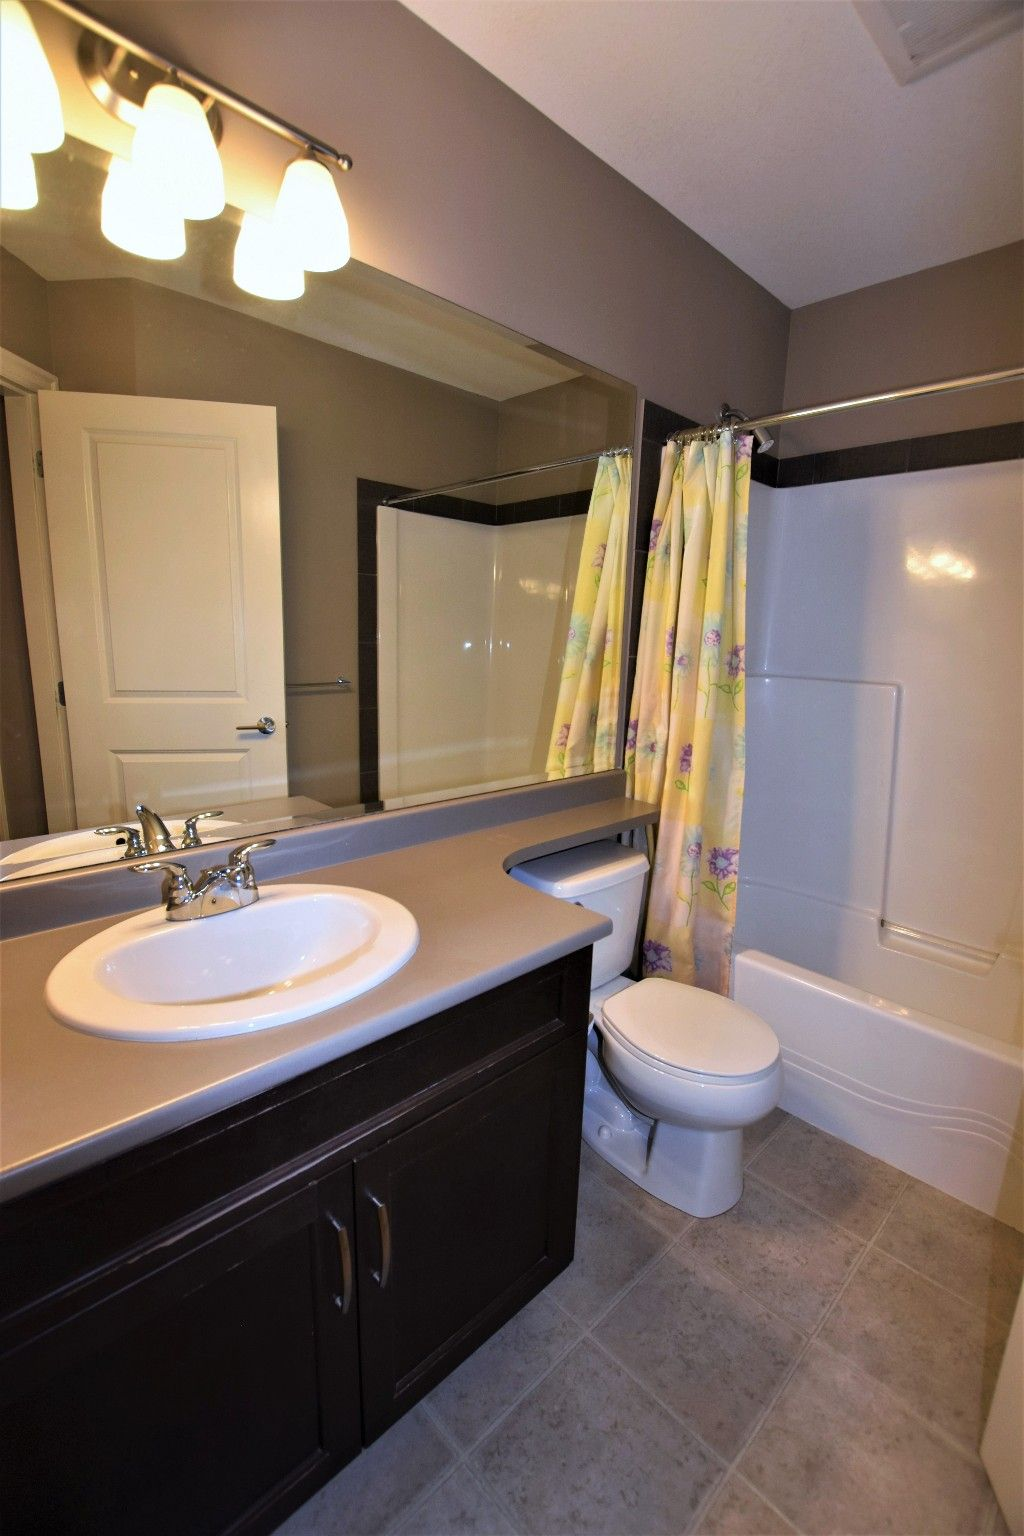 """Photo 14: Photos: 20849 71B Avenue in Langley: Willoughby Heights Condo for sale in """"Milner Heights"""" : MLS®# R2161882"""